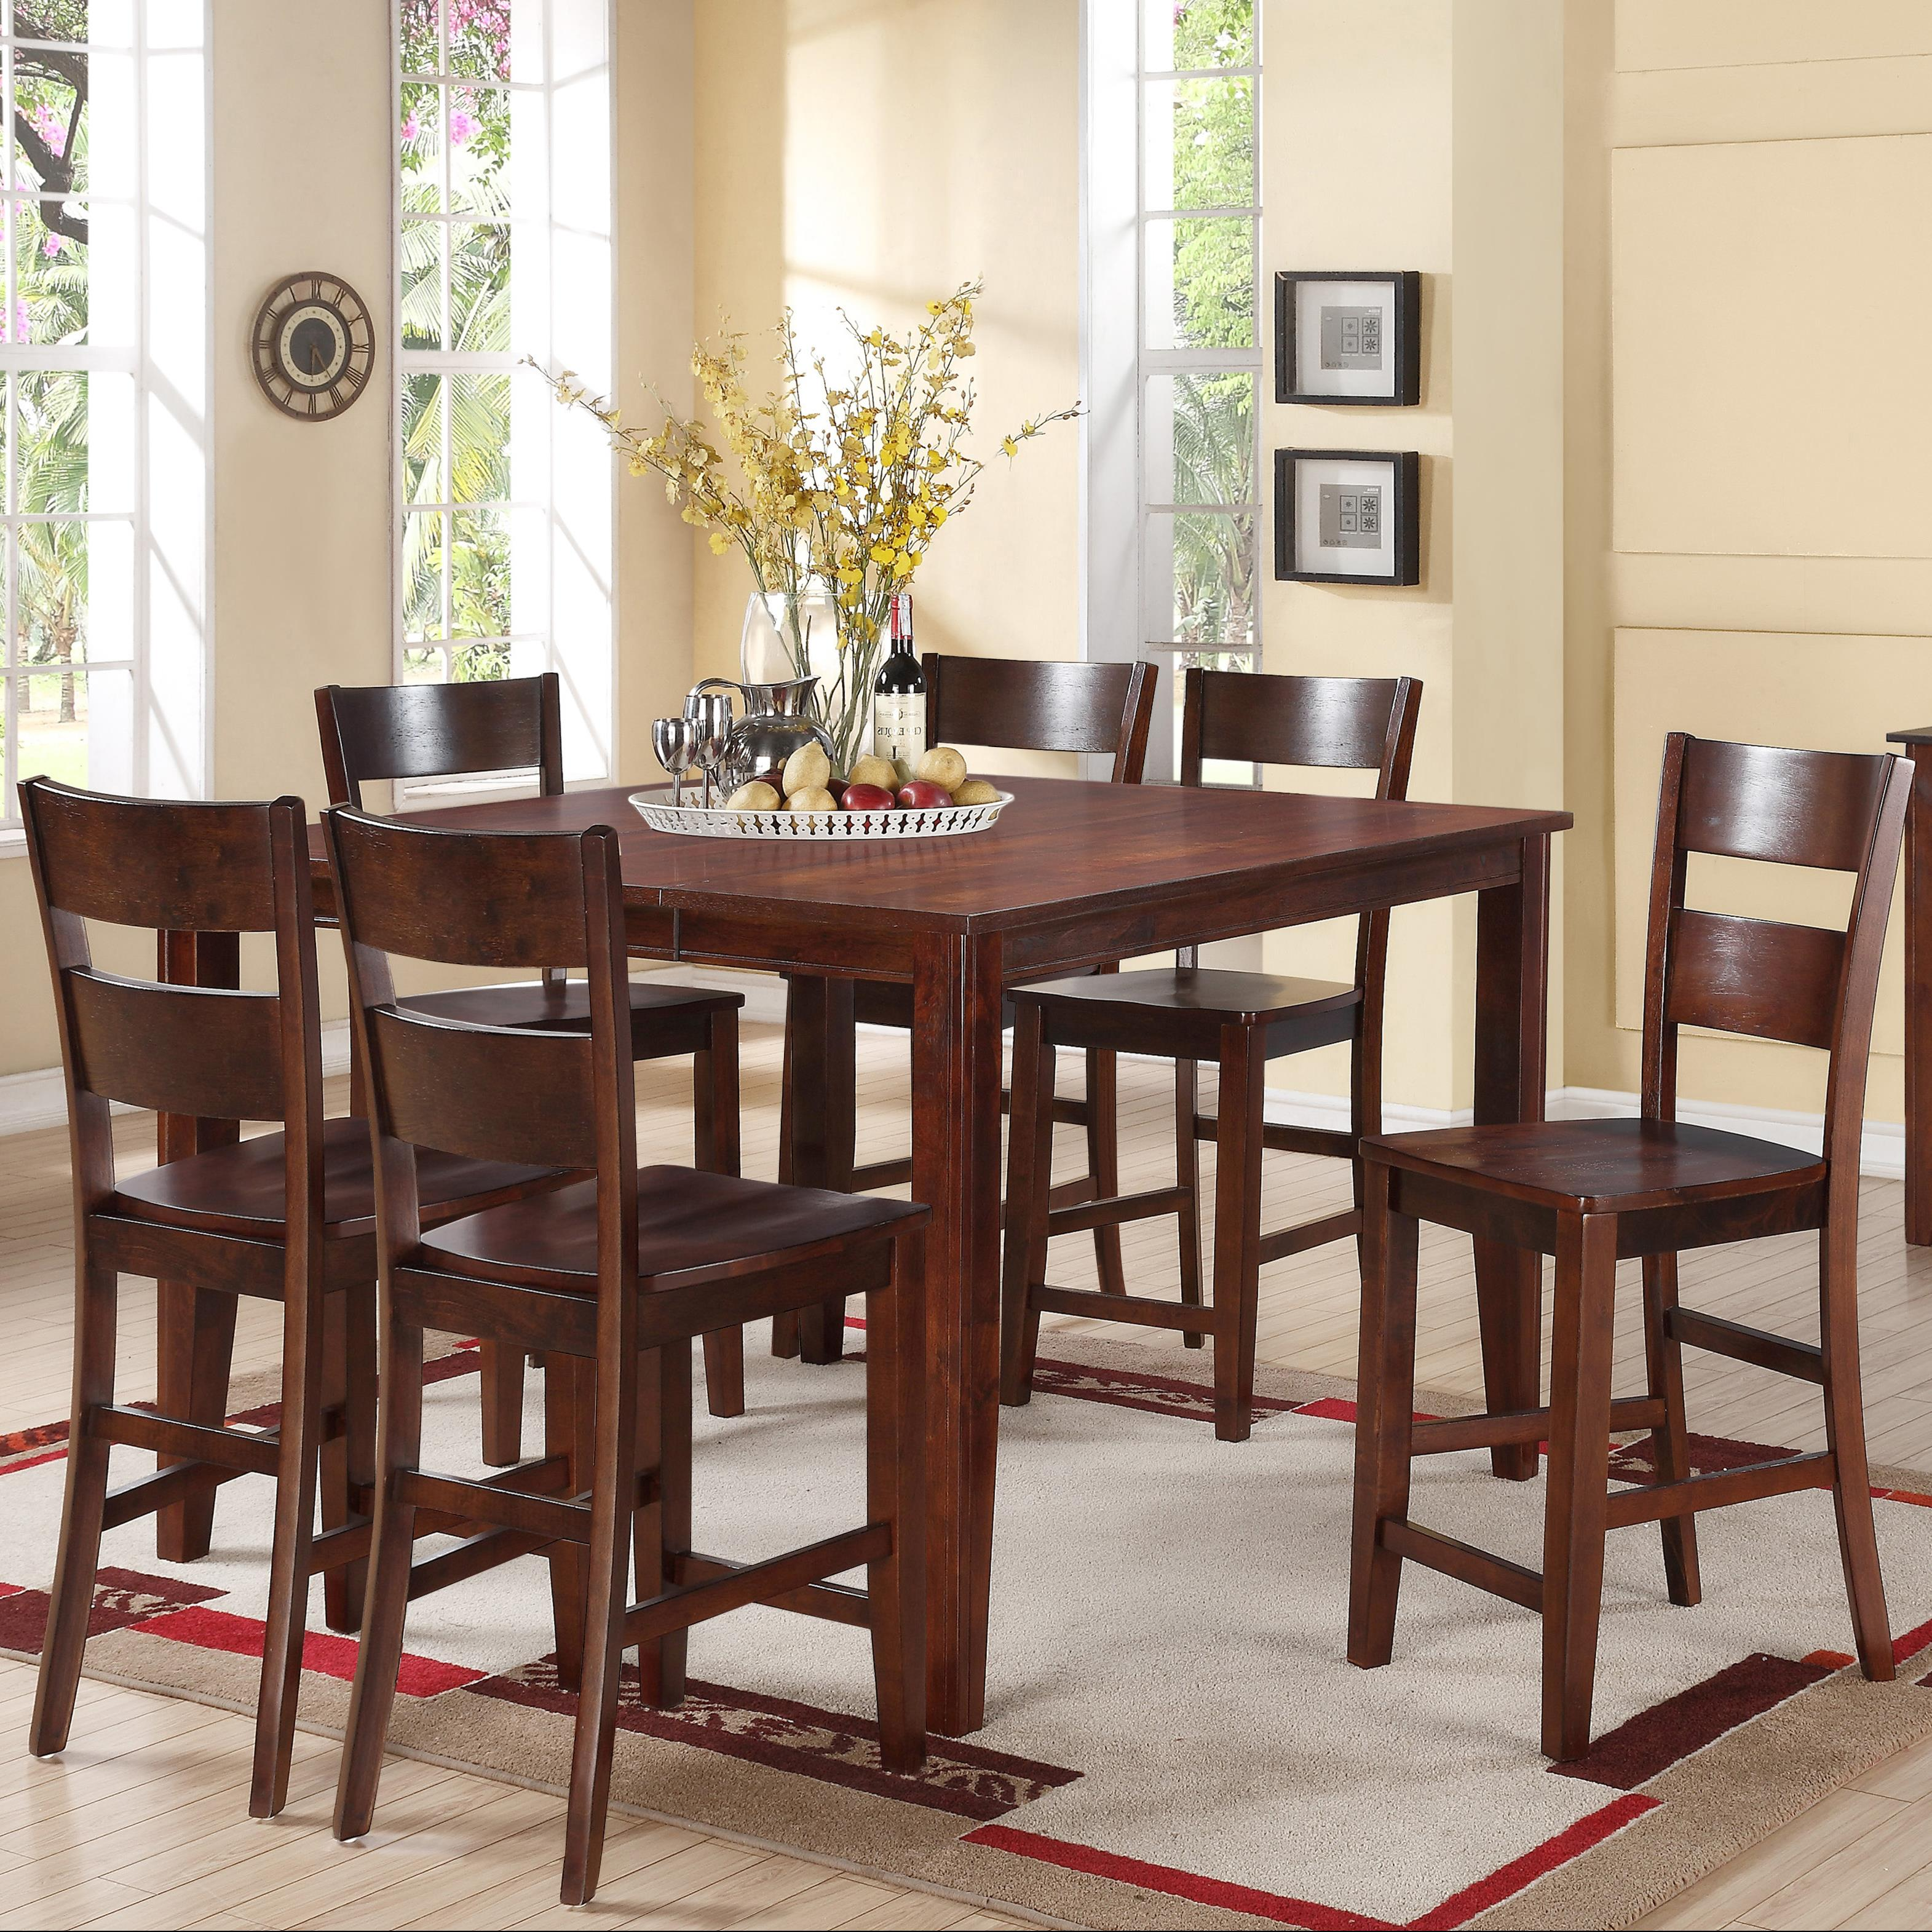 holland house 8203 7 piece counter height dining set with On holland house dining room furniture